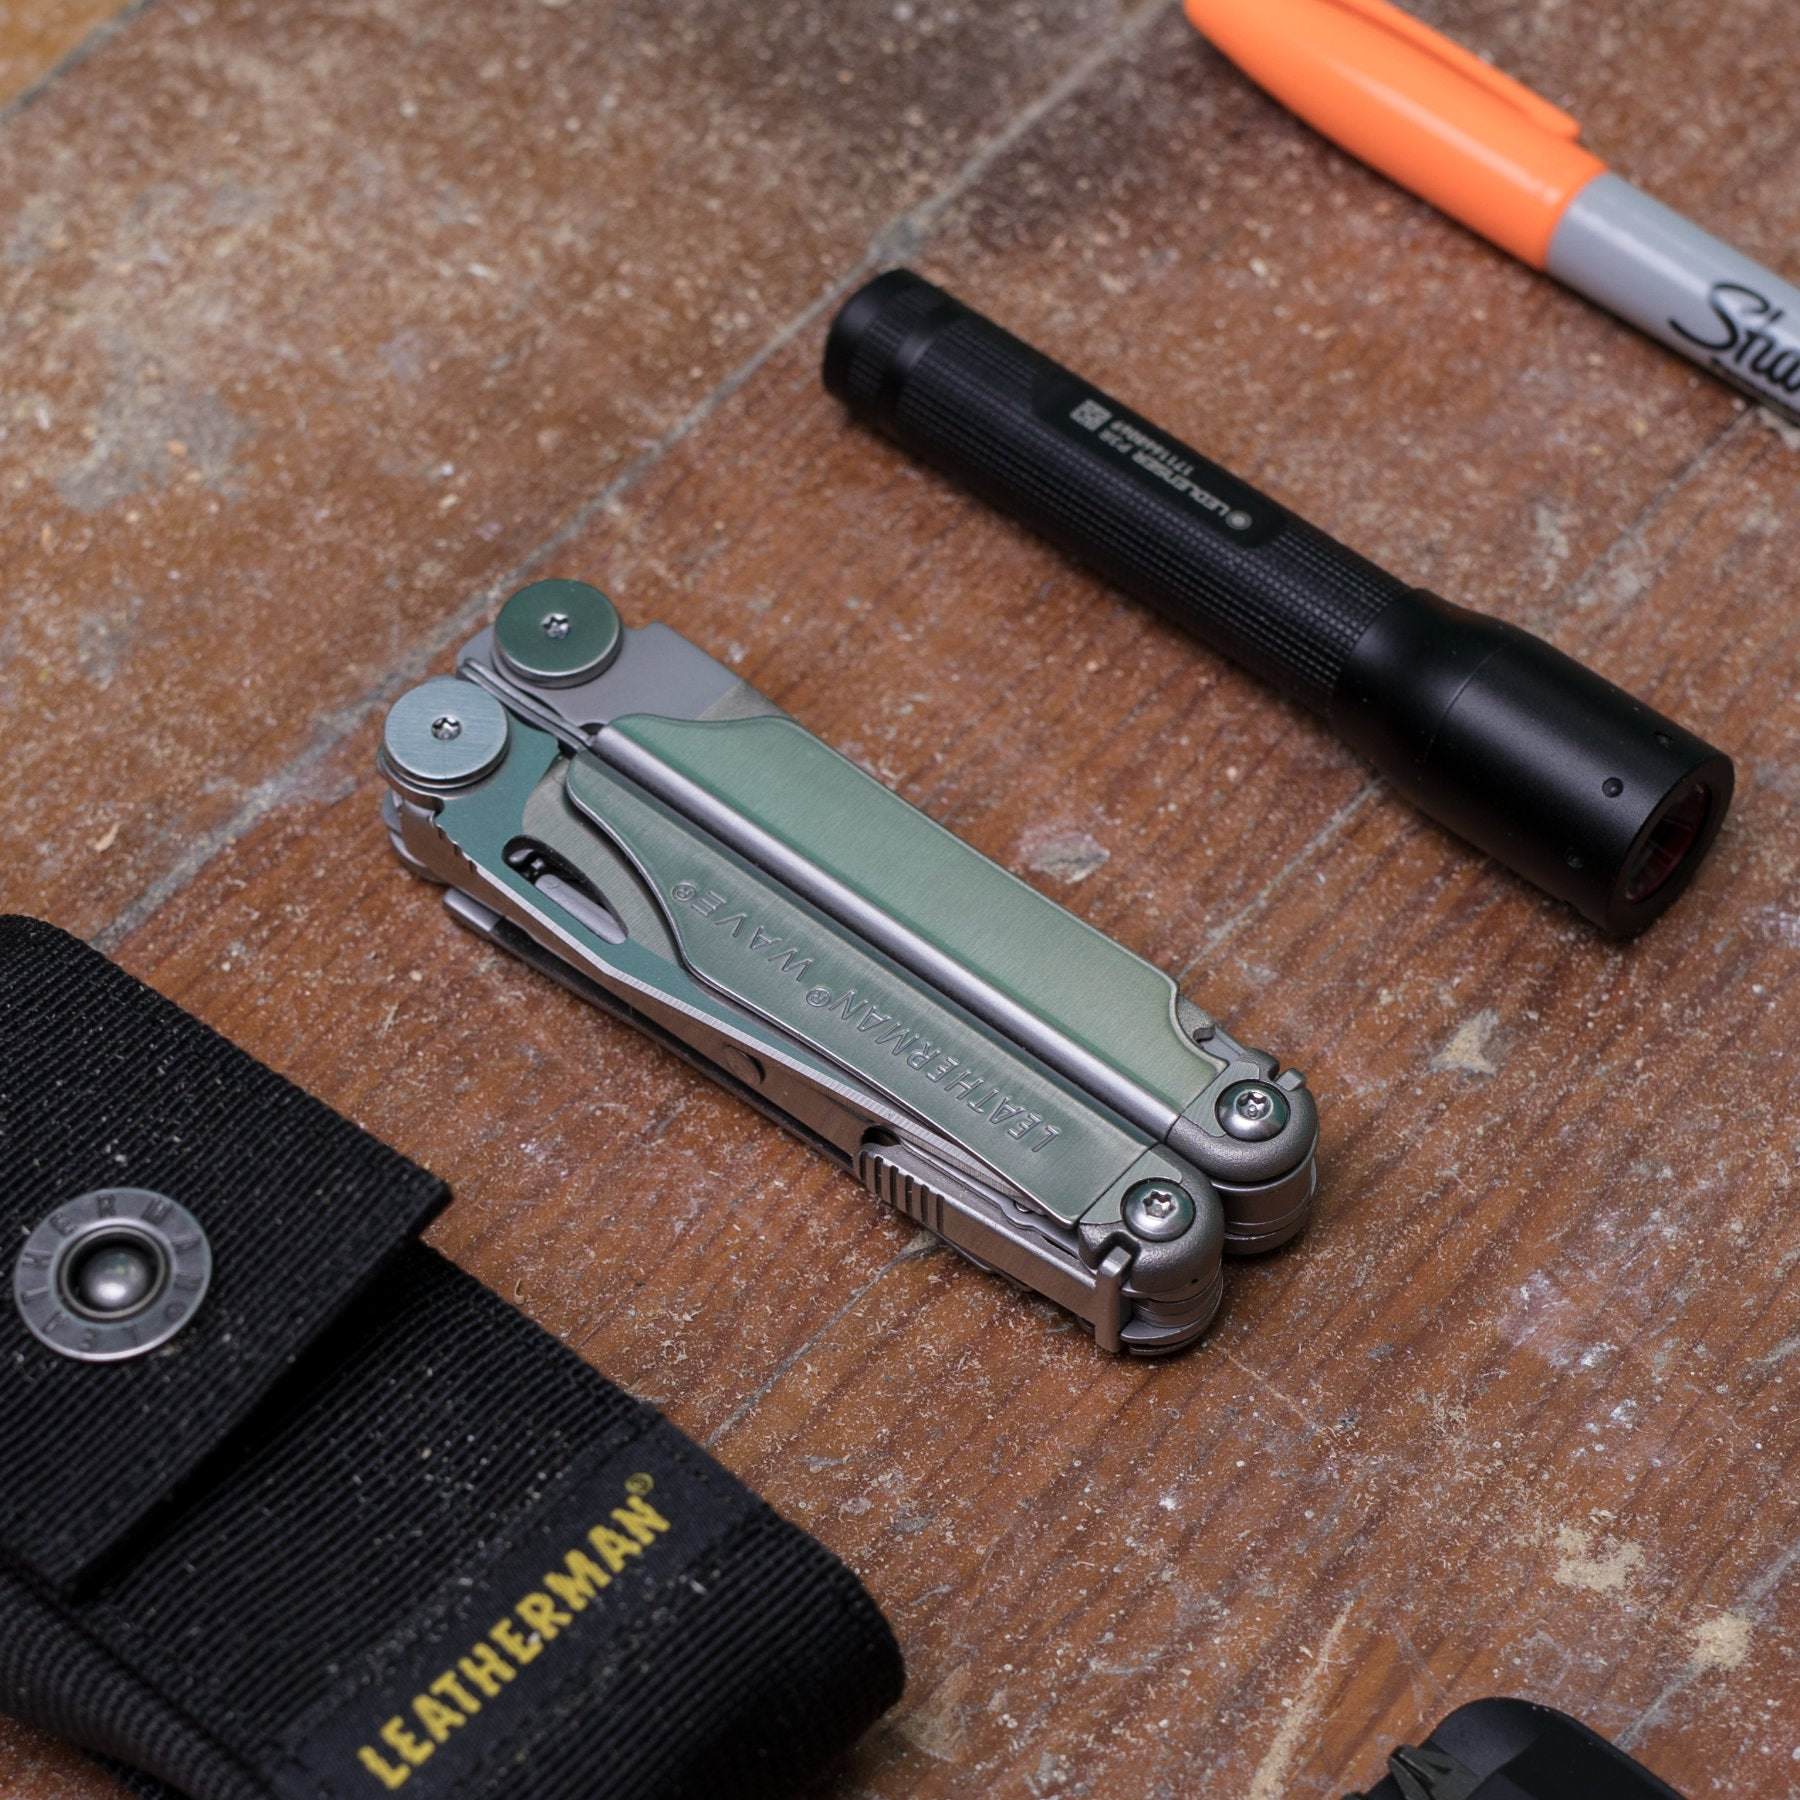 Everyday-carry Leatherman Tools at Swiss Knife Shop